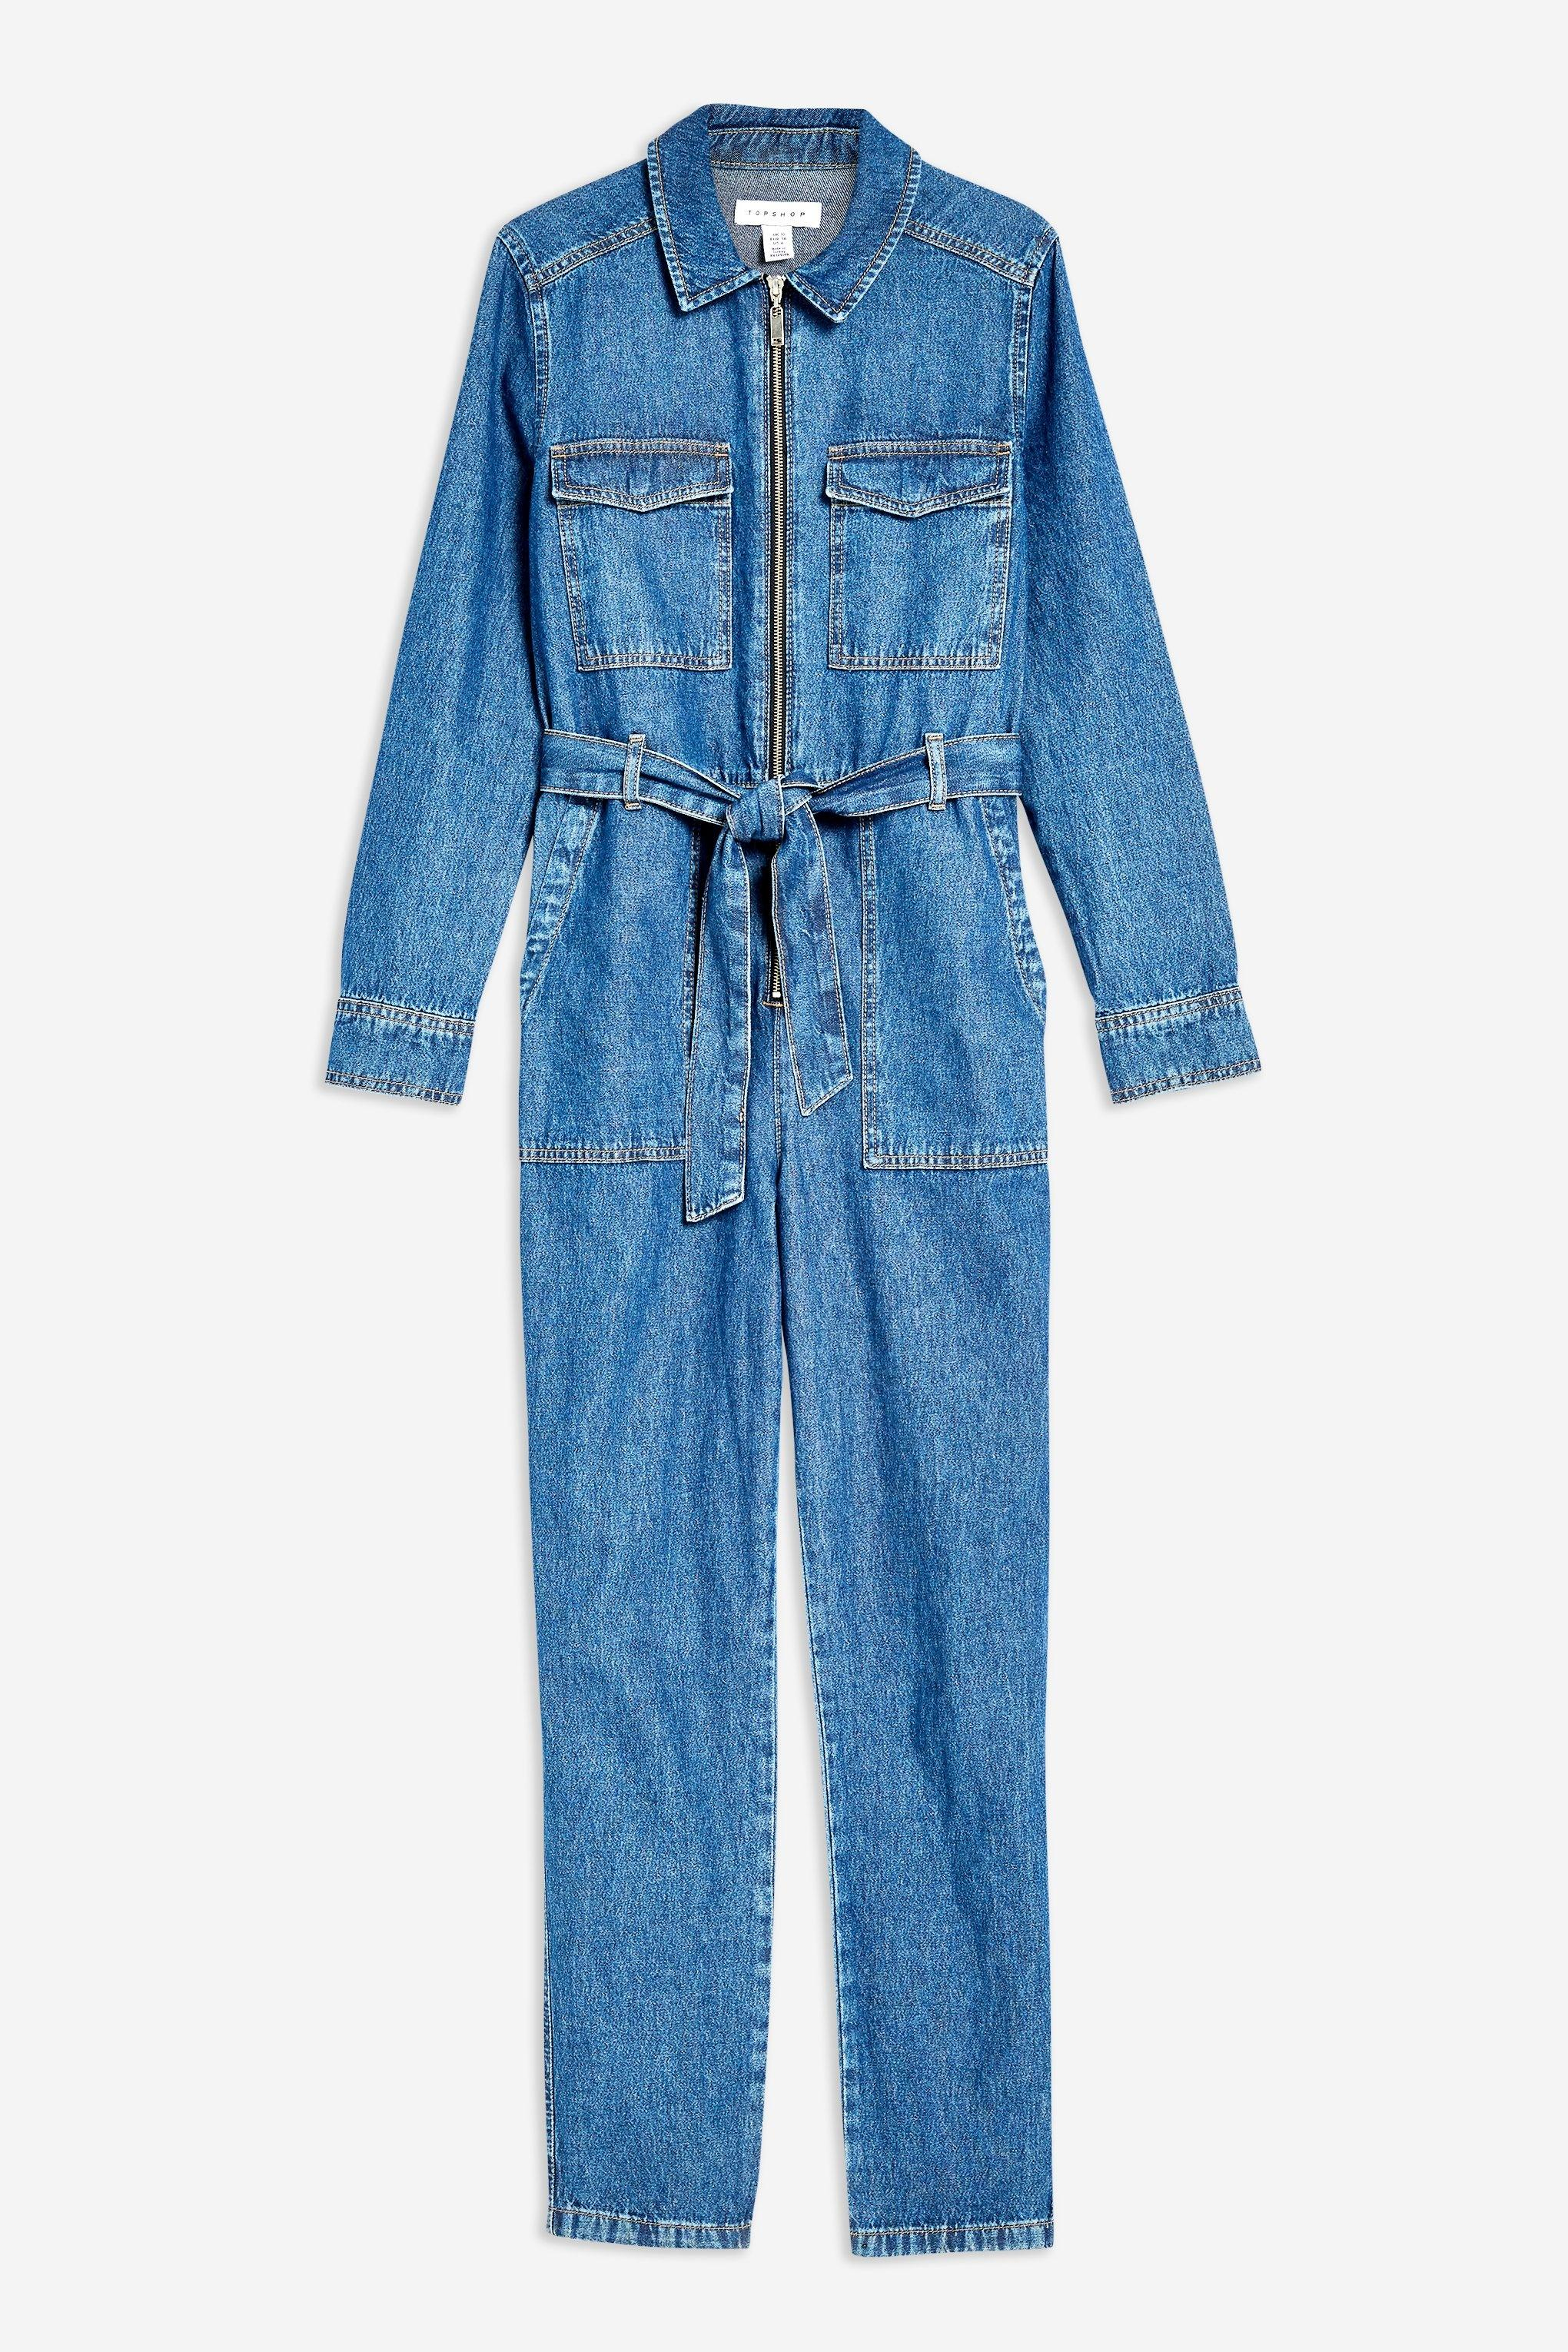 7f34d2f6bc7d TOPSHOP - Blue Tall Denim Utility Boiler Suit - Lyst. View fullscreen